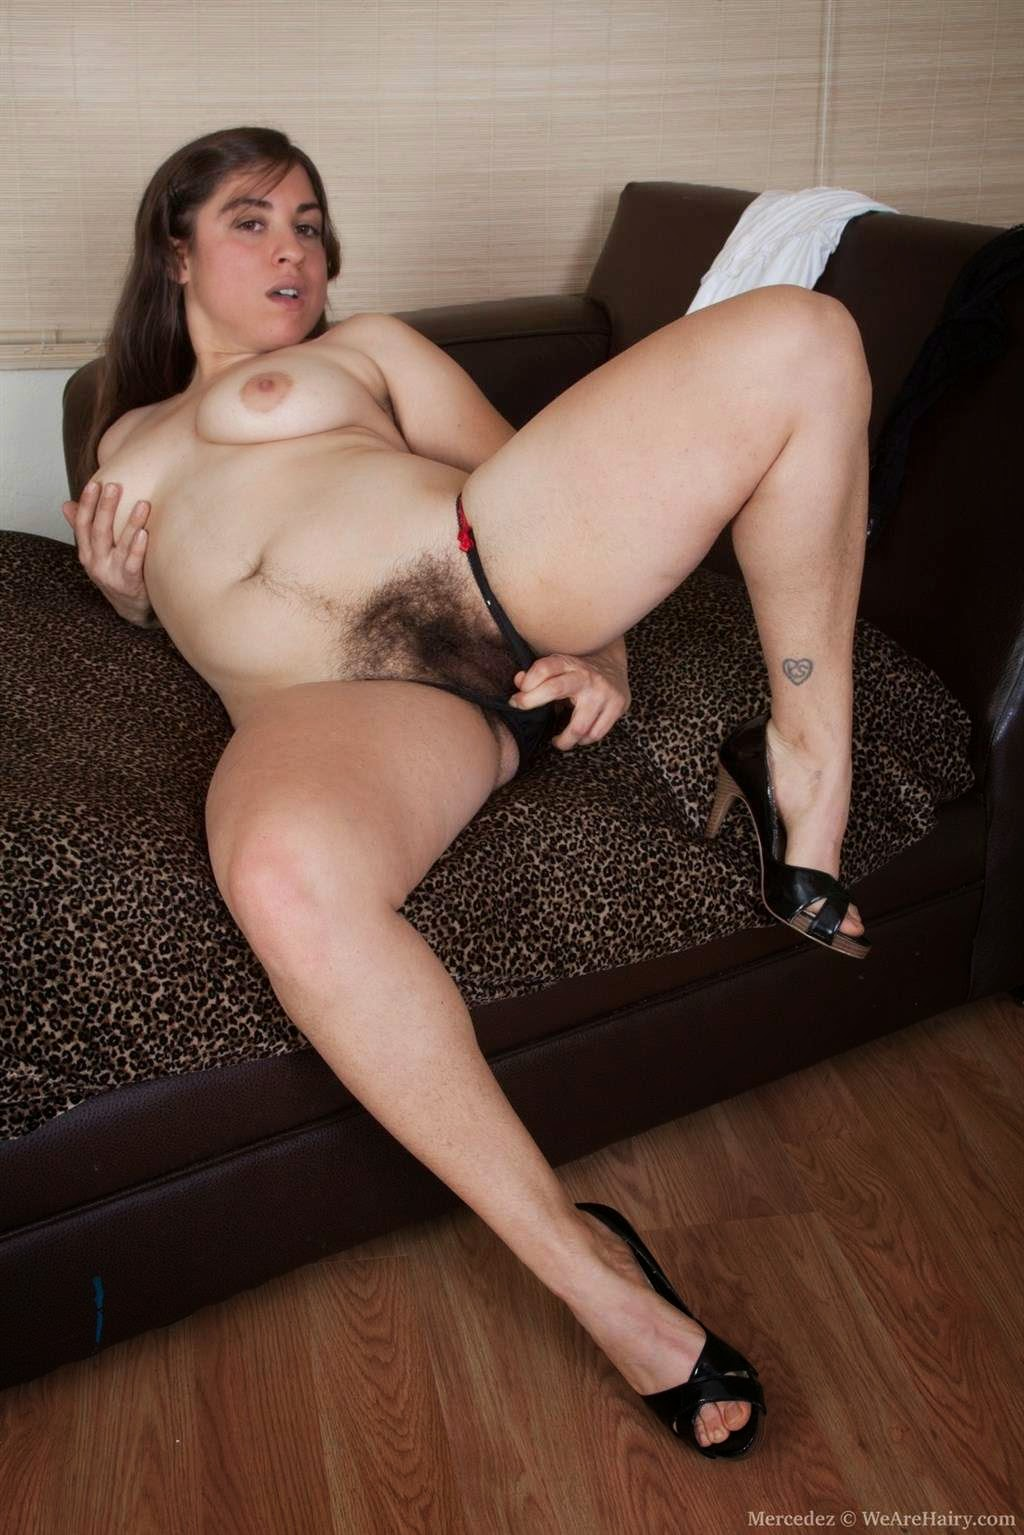 Freeones cherry b hardcore